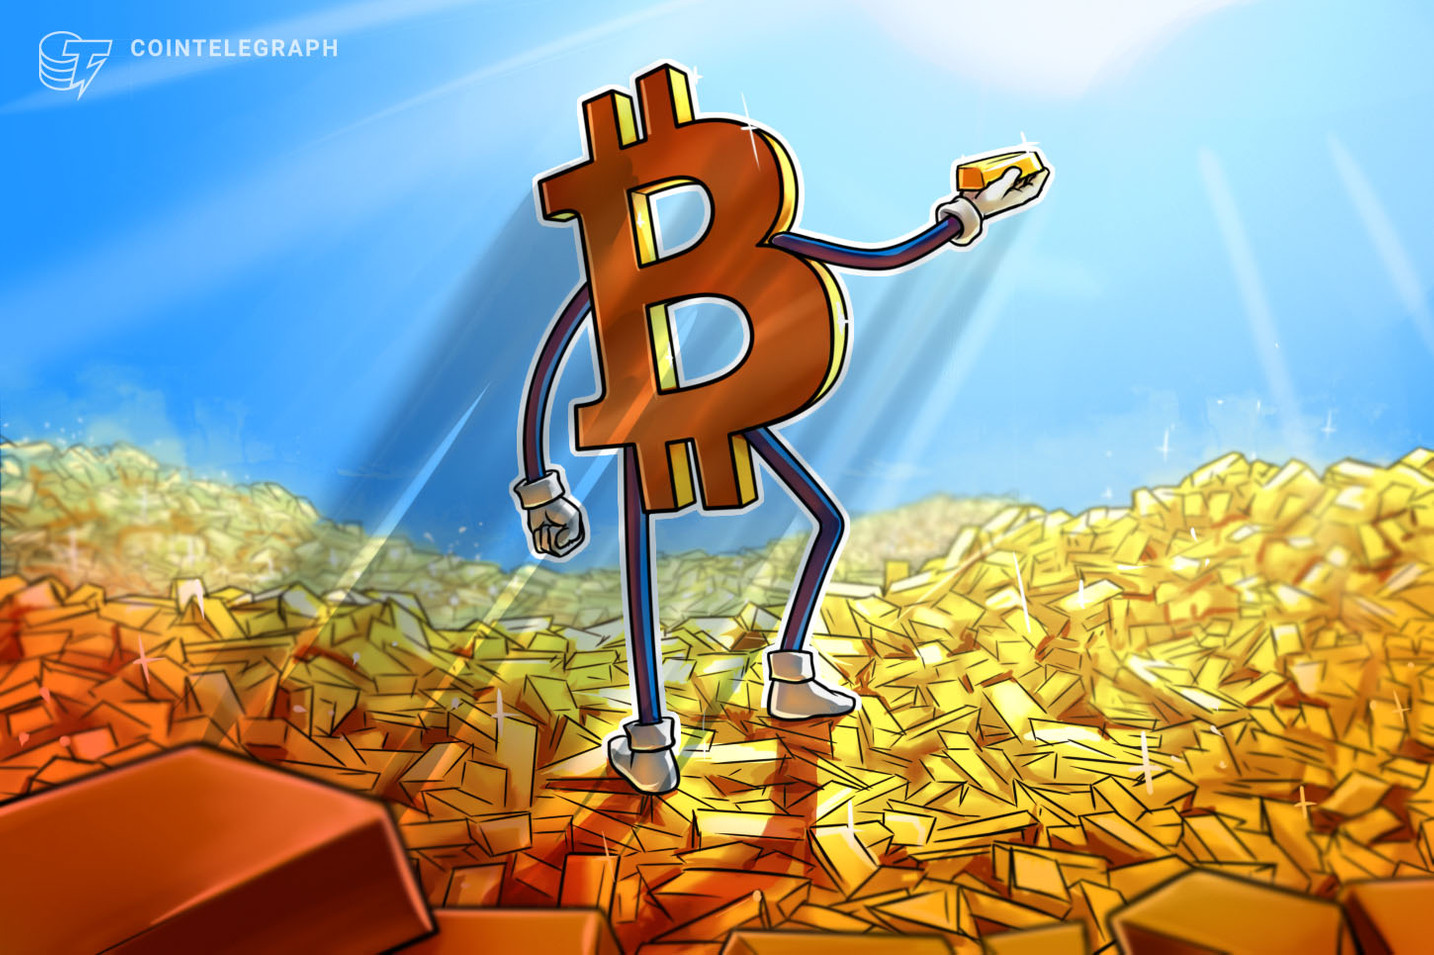 Bitcoin Hater Peter Schiff Says Dollar Approaching 'Wile E. Coyote Moment'